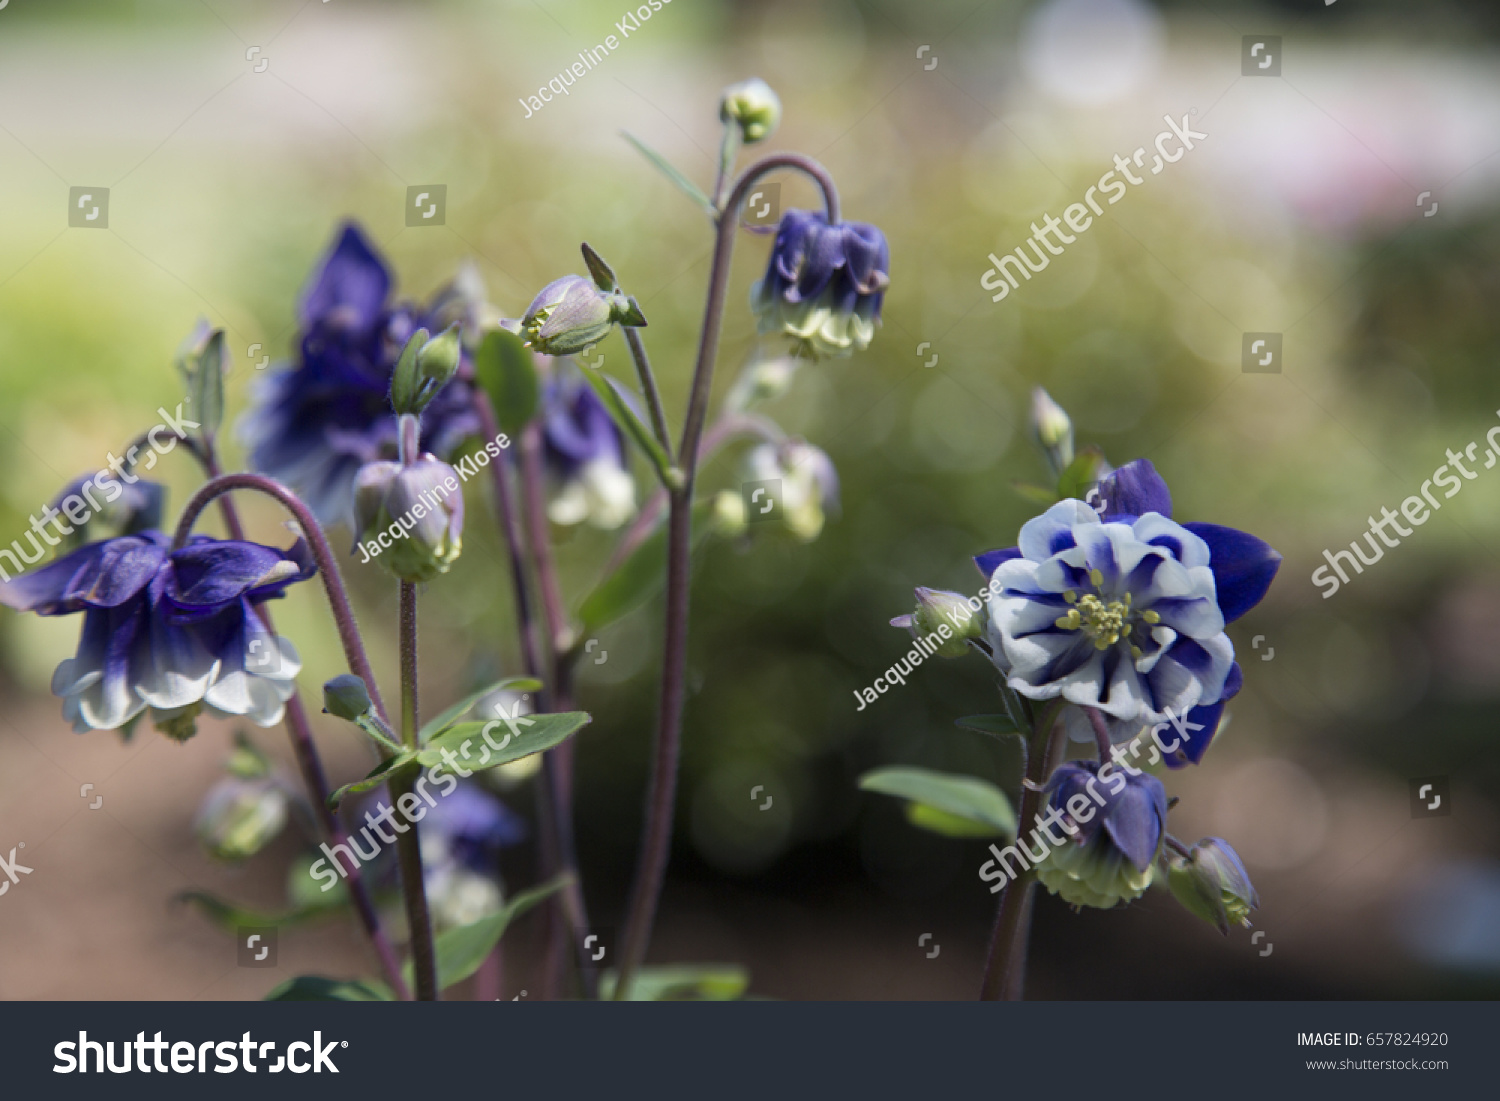 Isolated view blooming columbine flowers bi color stock photo isolated view blooming columbine flowers bi color vibrant purple and white pale yellow izmirmasajfo